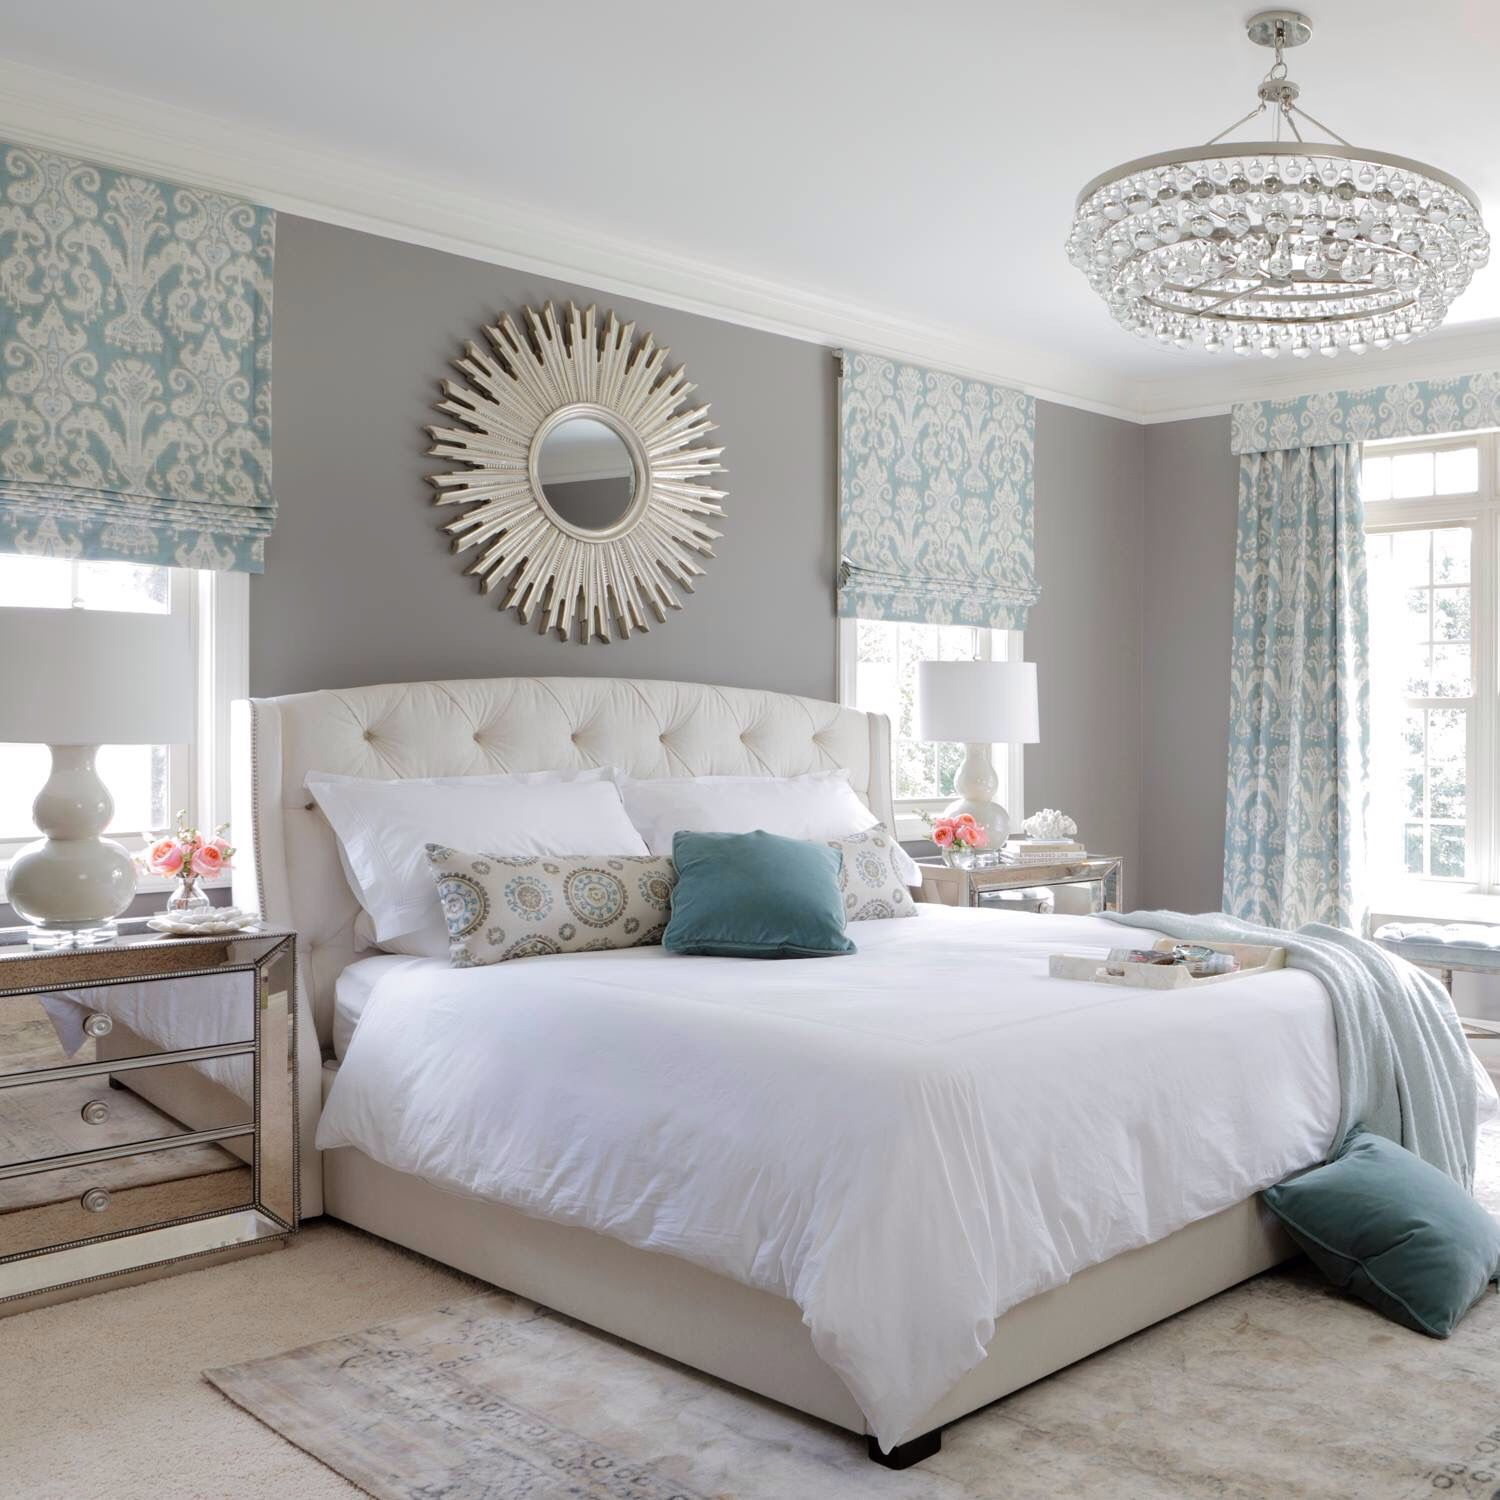 Bedroom Paint Colors Beige Bedroom Mirror Ideas Glamorous Bedroom Chairs Star Wars Bedroom Accessories: Love The Muted Colors, Sunburst Mirror And Chandelier